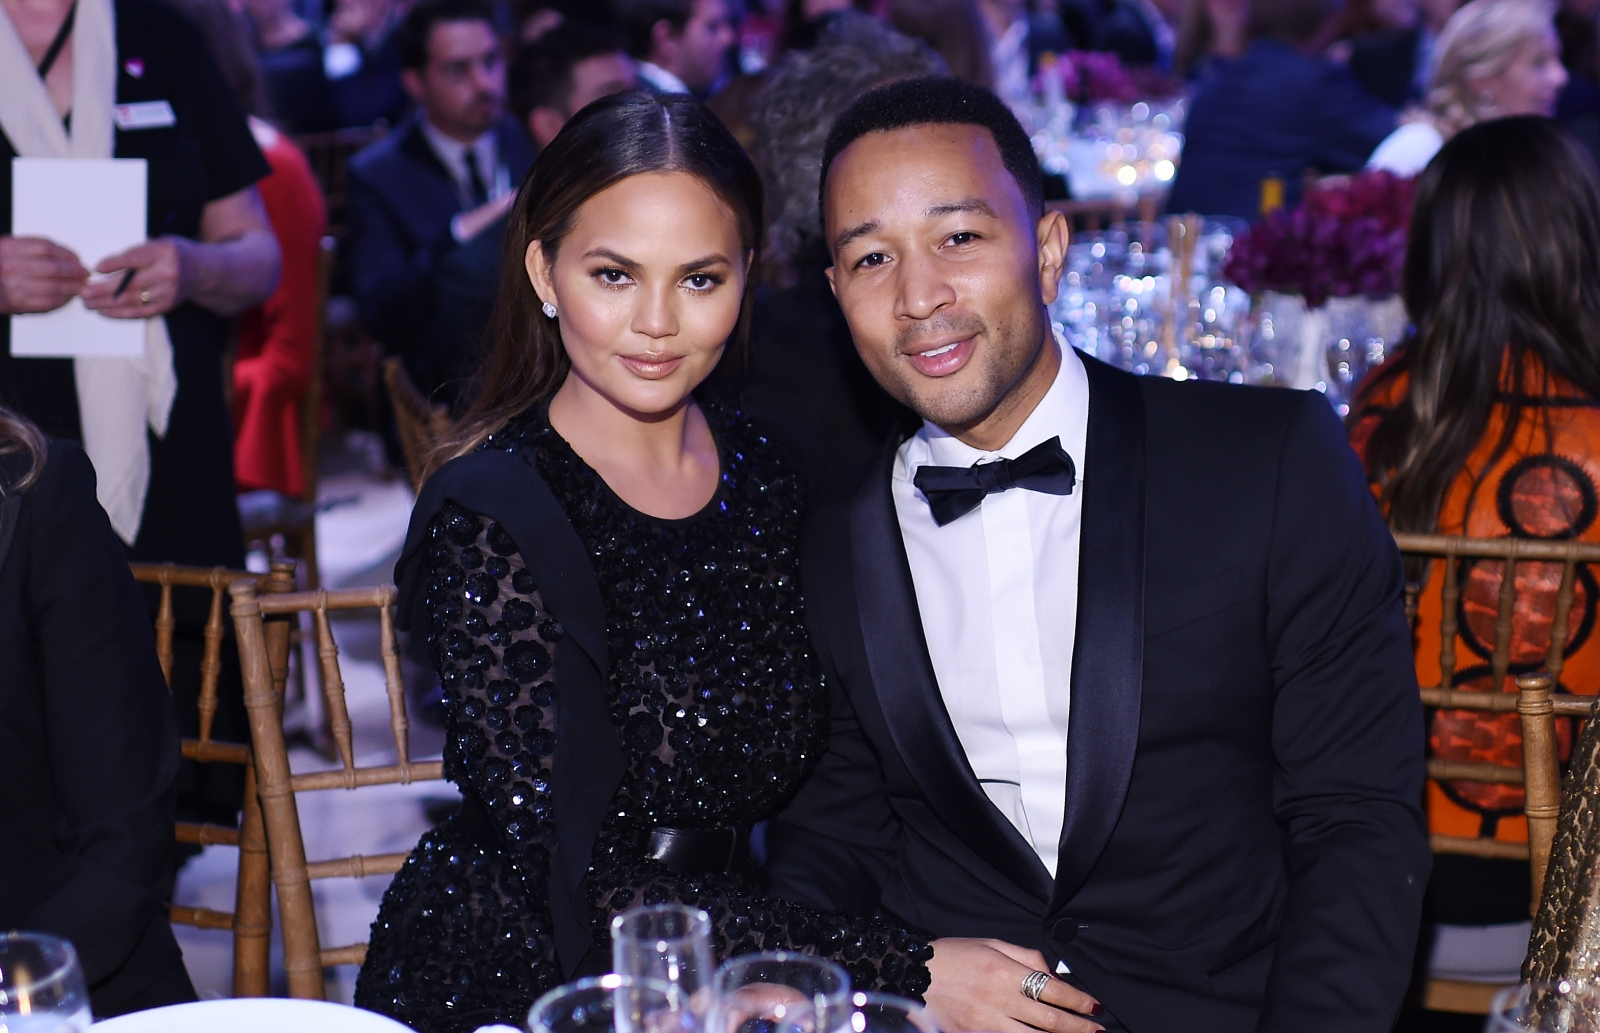 Chrissy Teigen Fights Back After She Is 'Mummy Shamed' Online